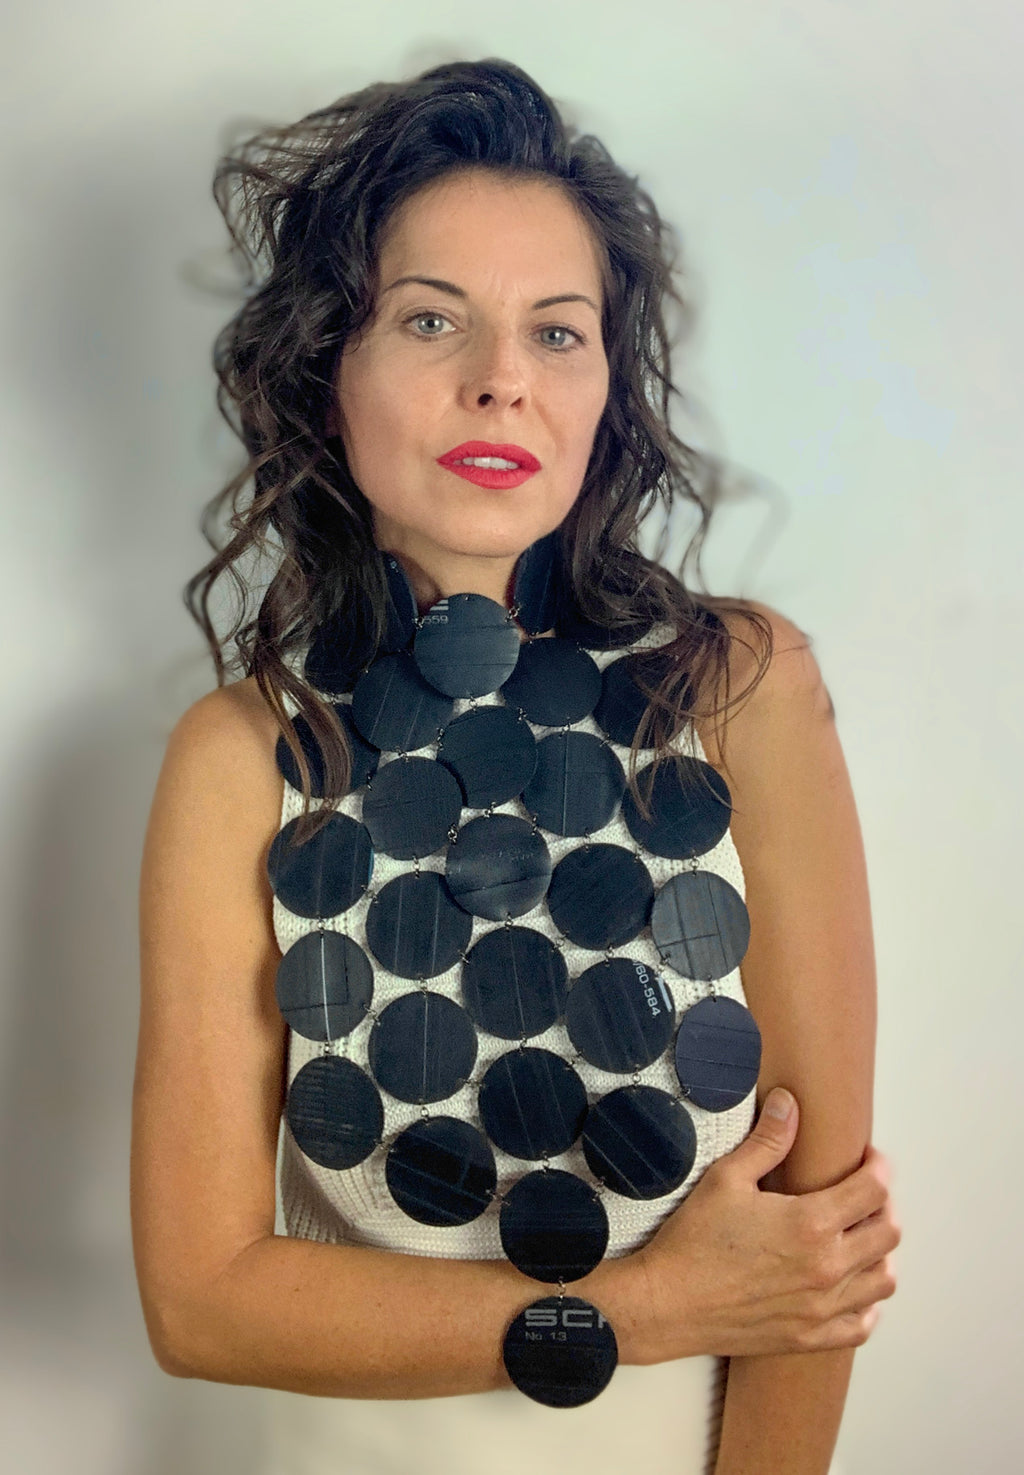 recycled jewellery, Bike tube neckpiece by Laura Zabo